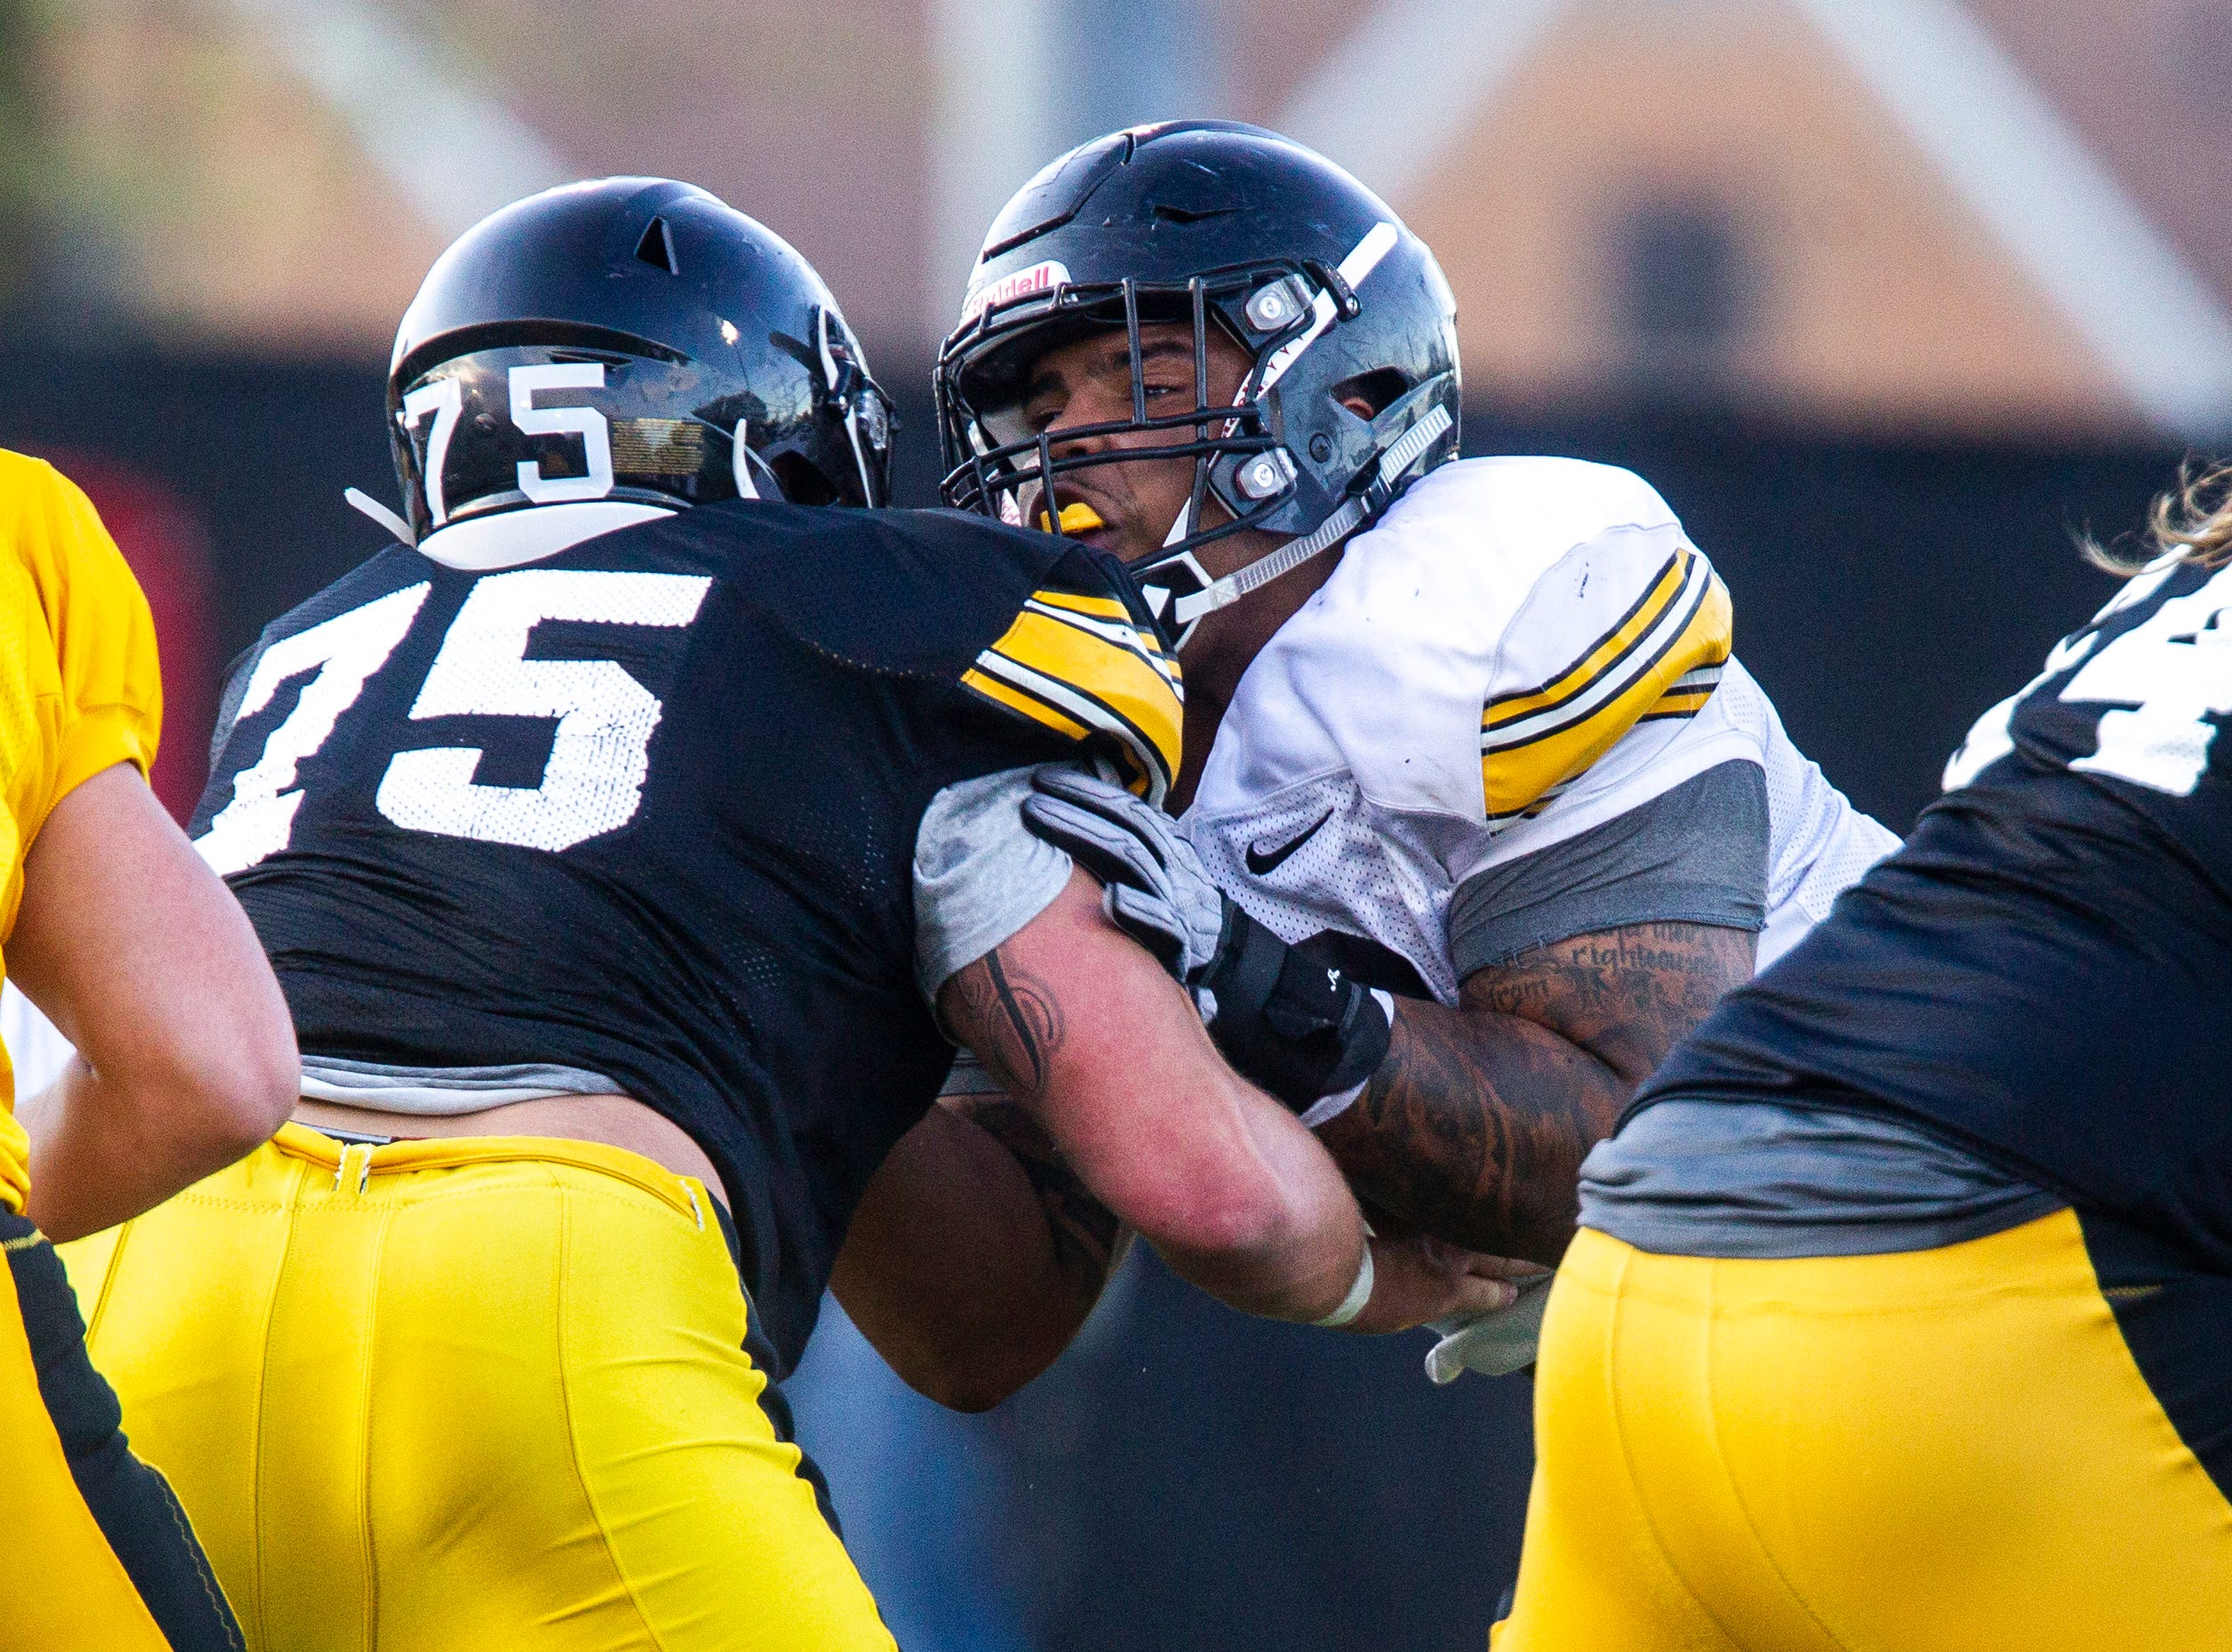 Iowa defensive lineman Noah Shannon (99) blocks during the final spring football practice, Friday, April 26, 2019, at the University of Iowa outdoor practice facility in Iowa City, Iowa.